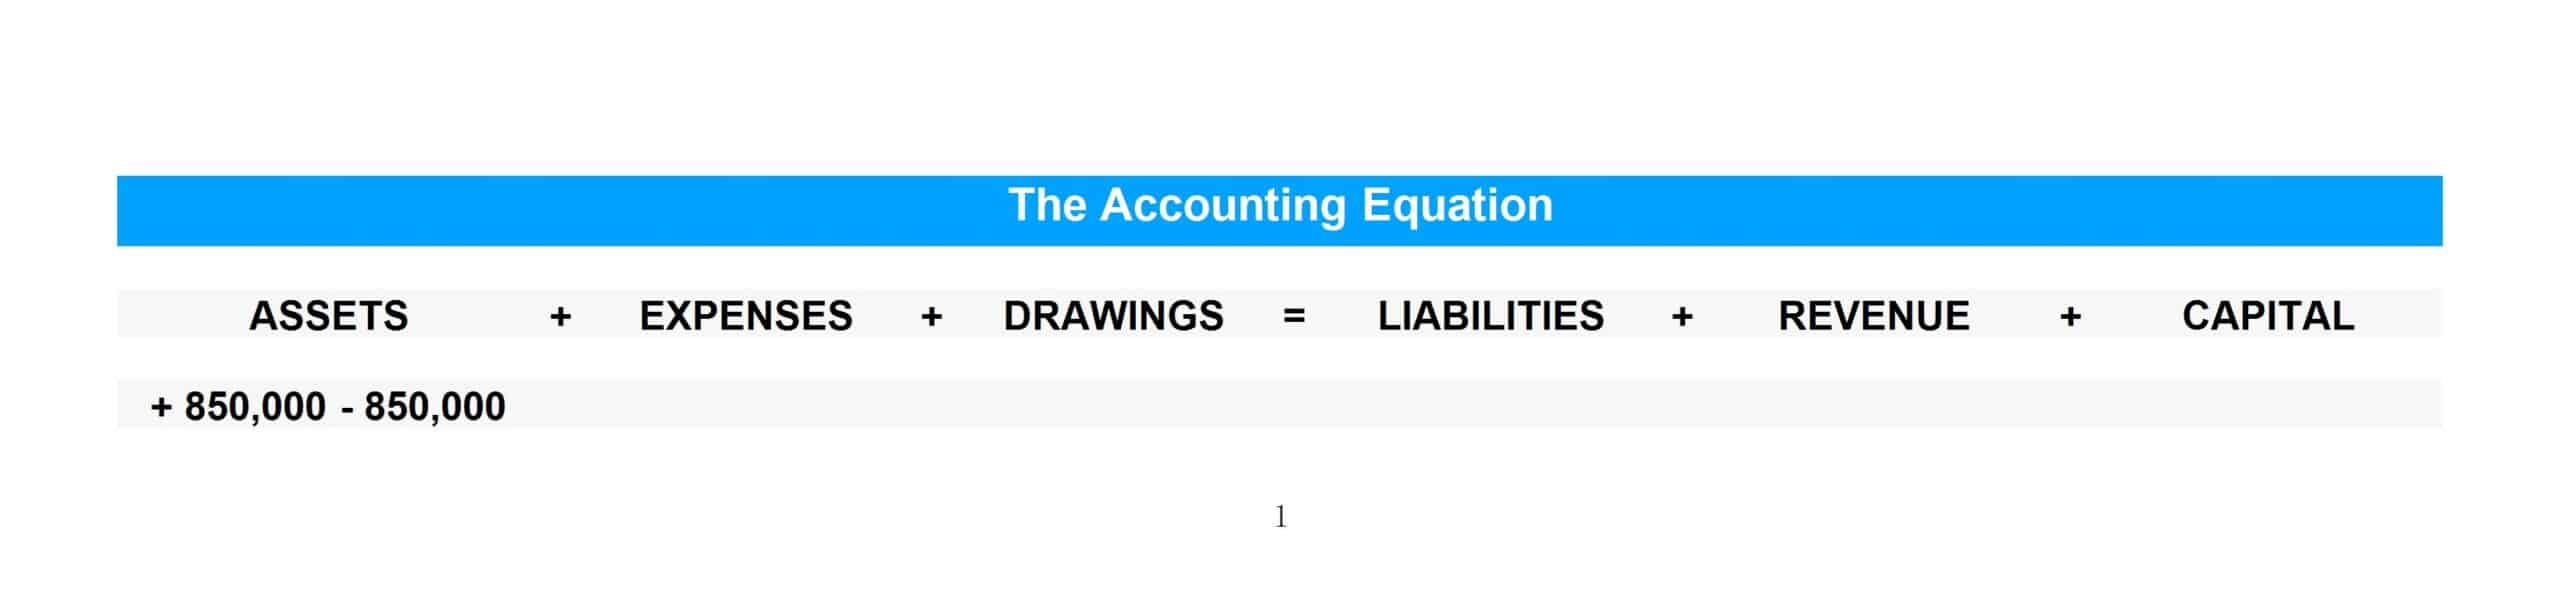 The purchase of a non-current asset for cash is recorded under the asset category in the accounting equation.